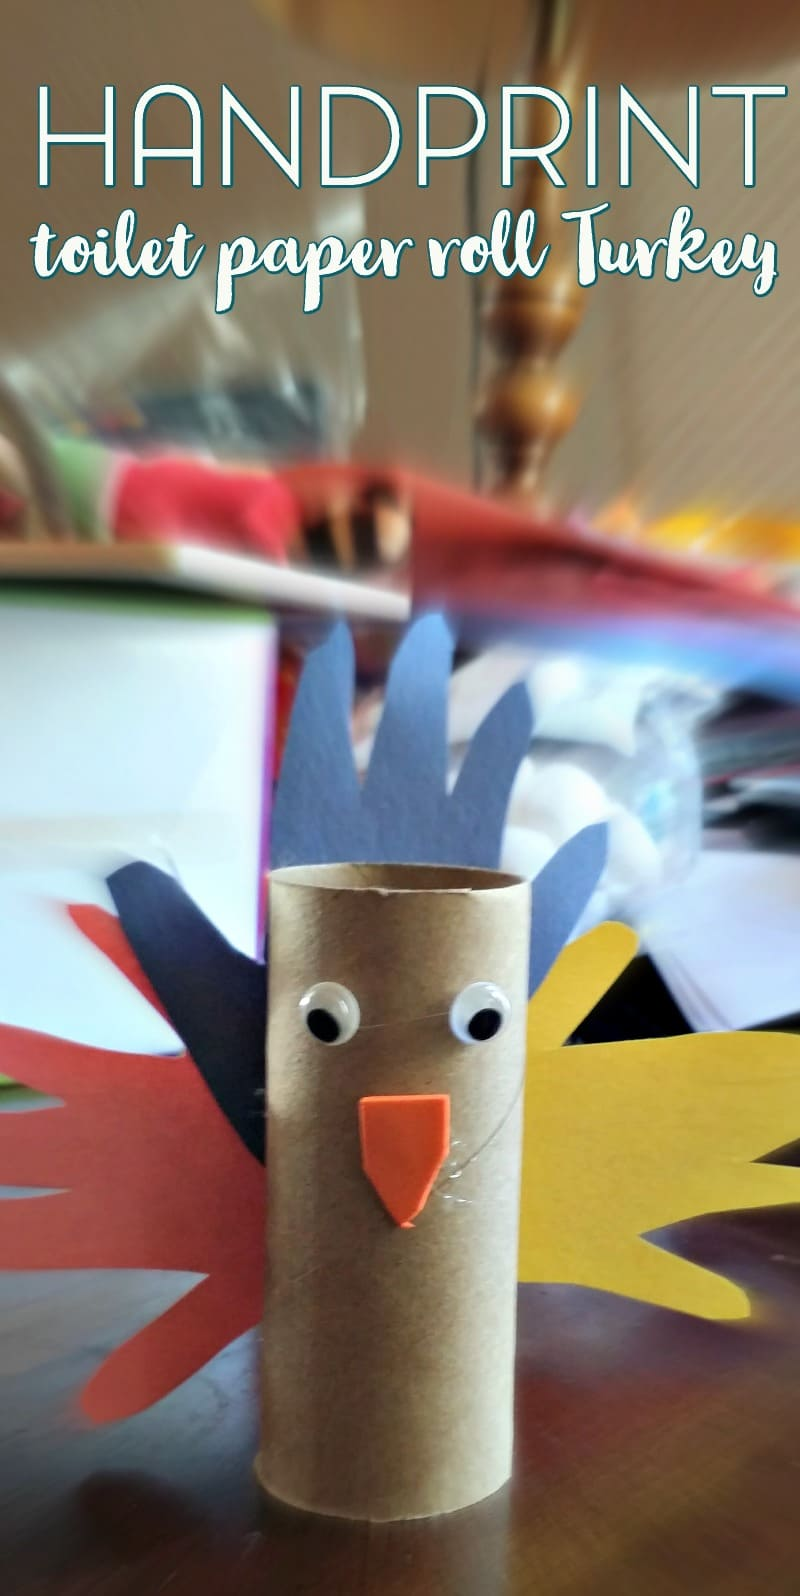 Handprint Toilet Paper Roll Turkey Craft for Kids